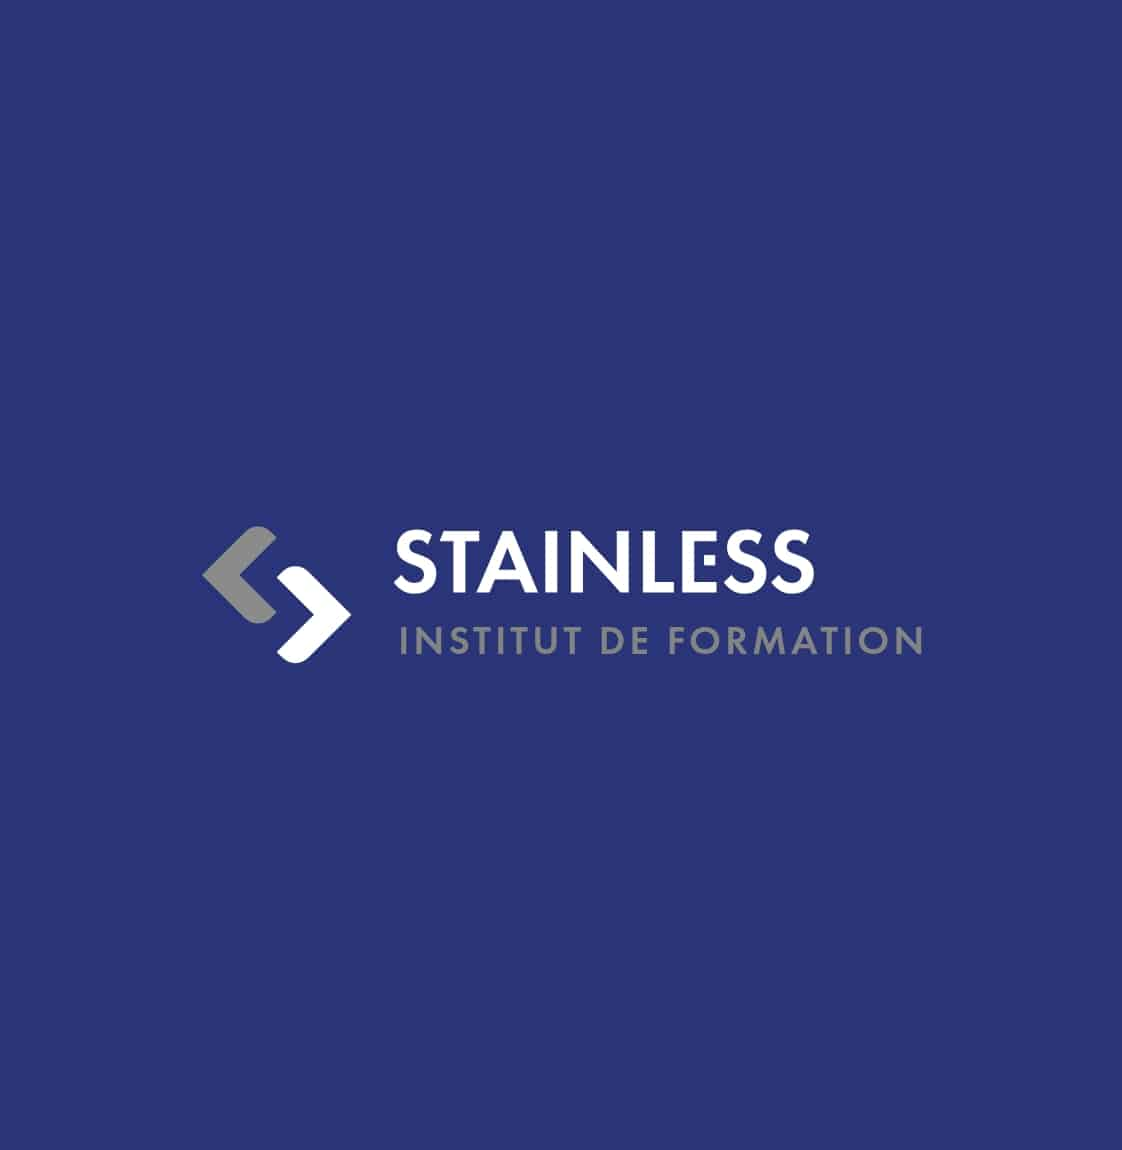 STAINLESS institut de formation